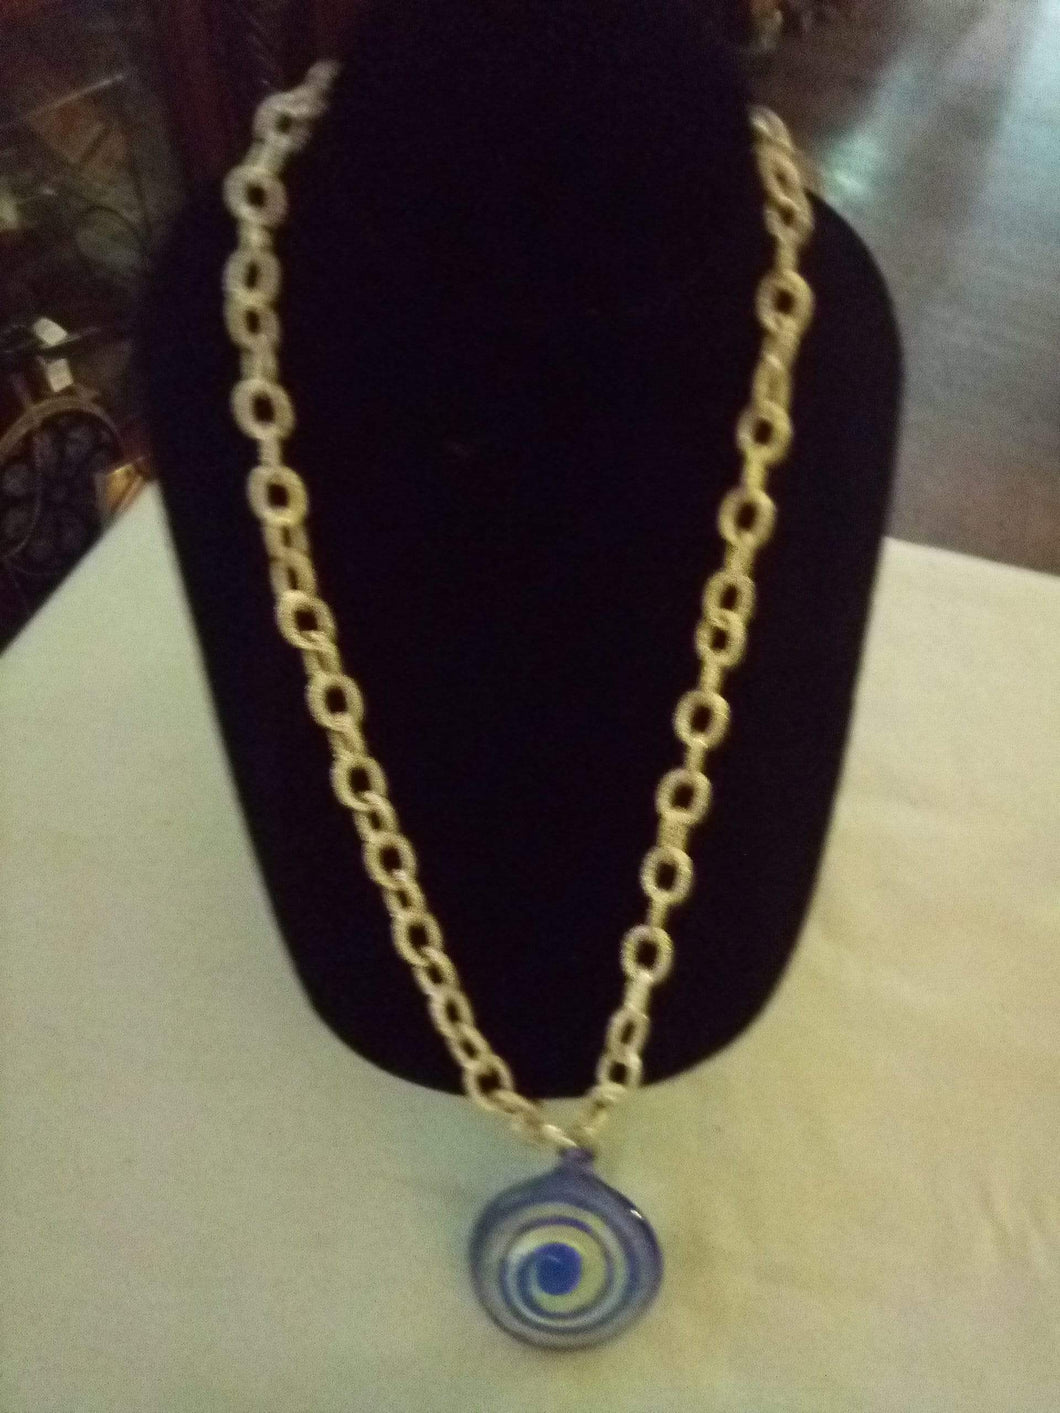 Nice silver tone necklace with glass pendent - B&P'sringsnthings